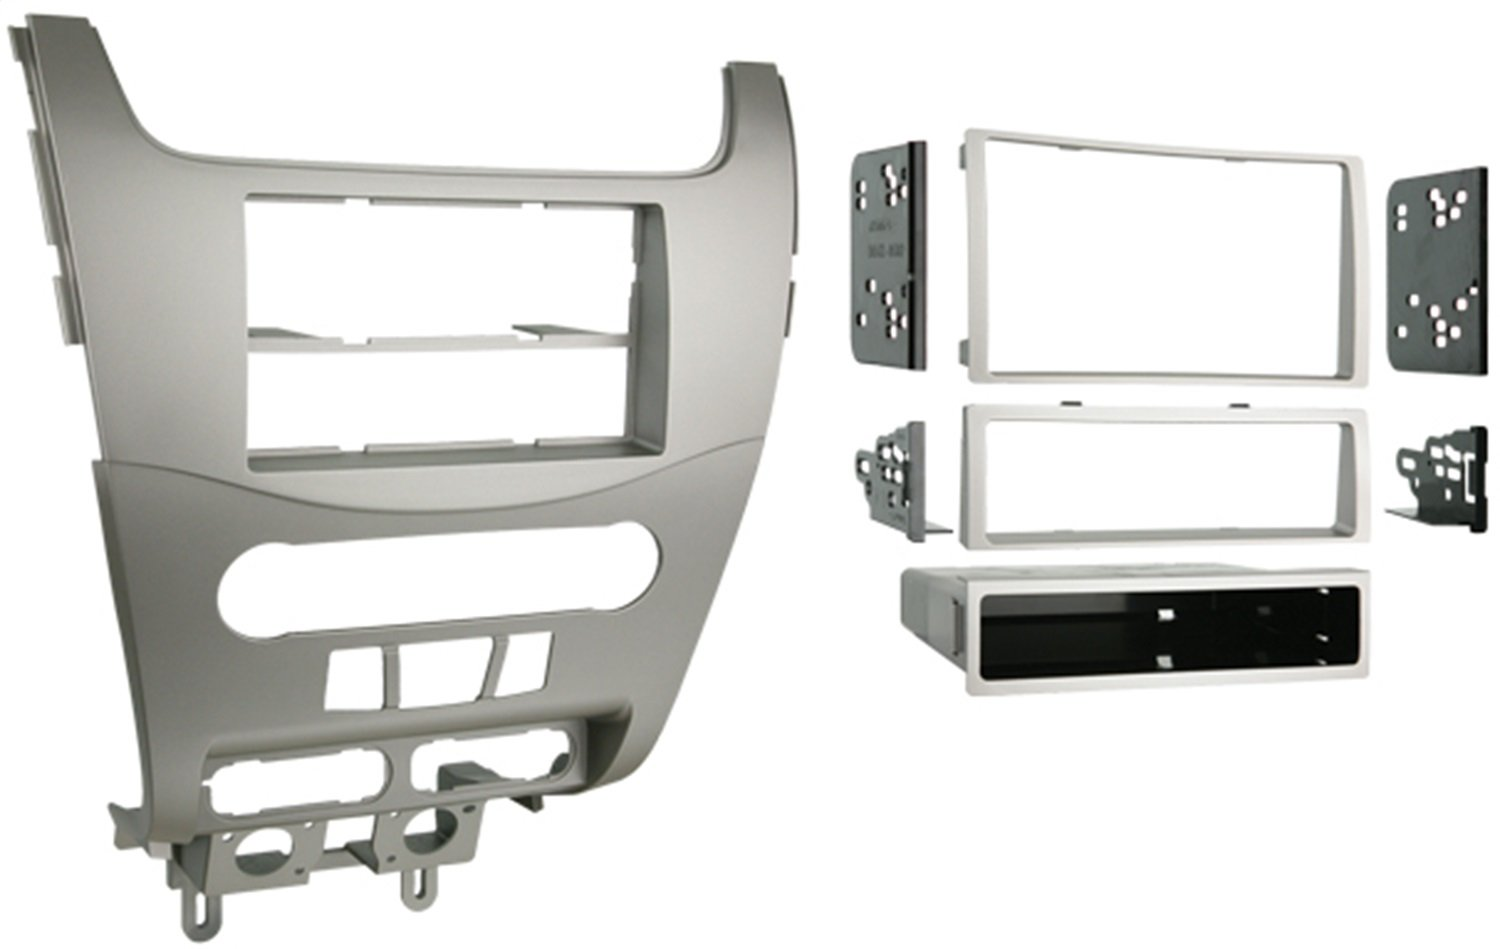 Metra 99-5816 Single or Double DIN Installation Kit for 2008-2009 Ford Focus (Black) Metra Electronics Corporation